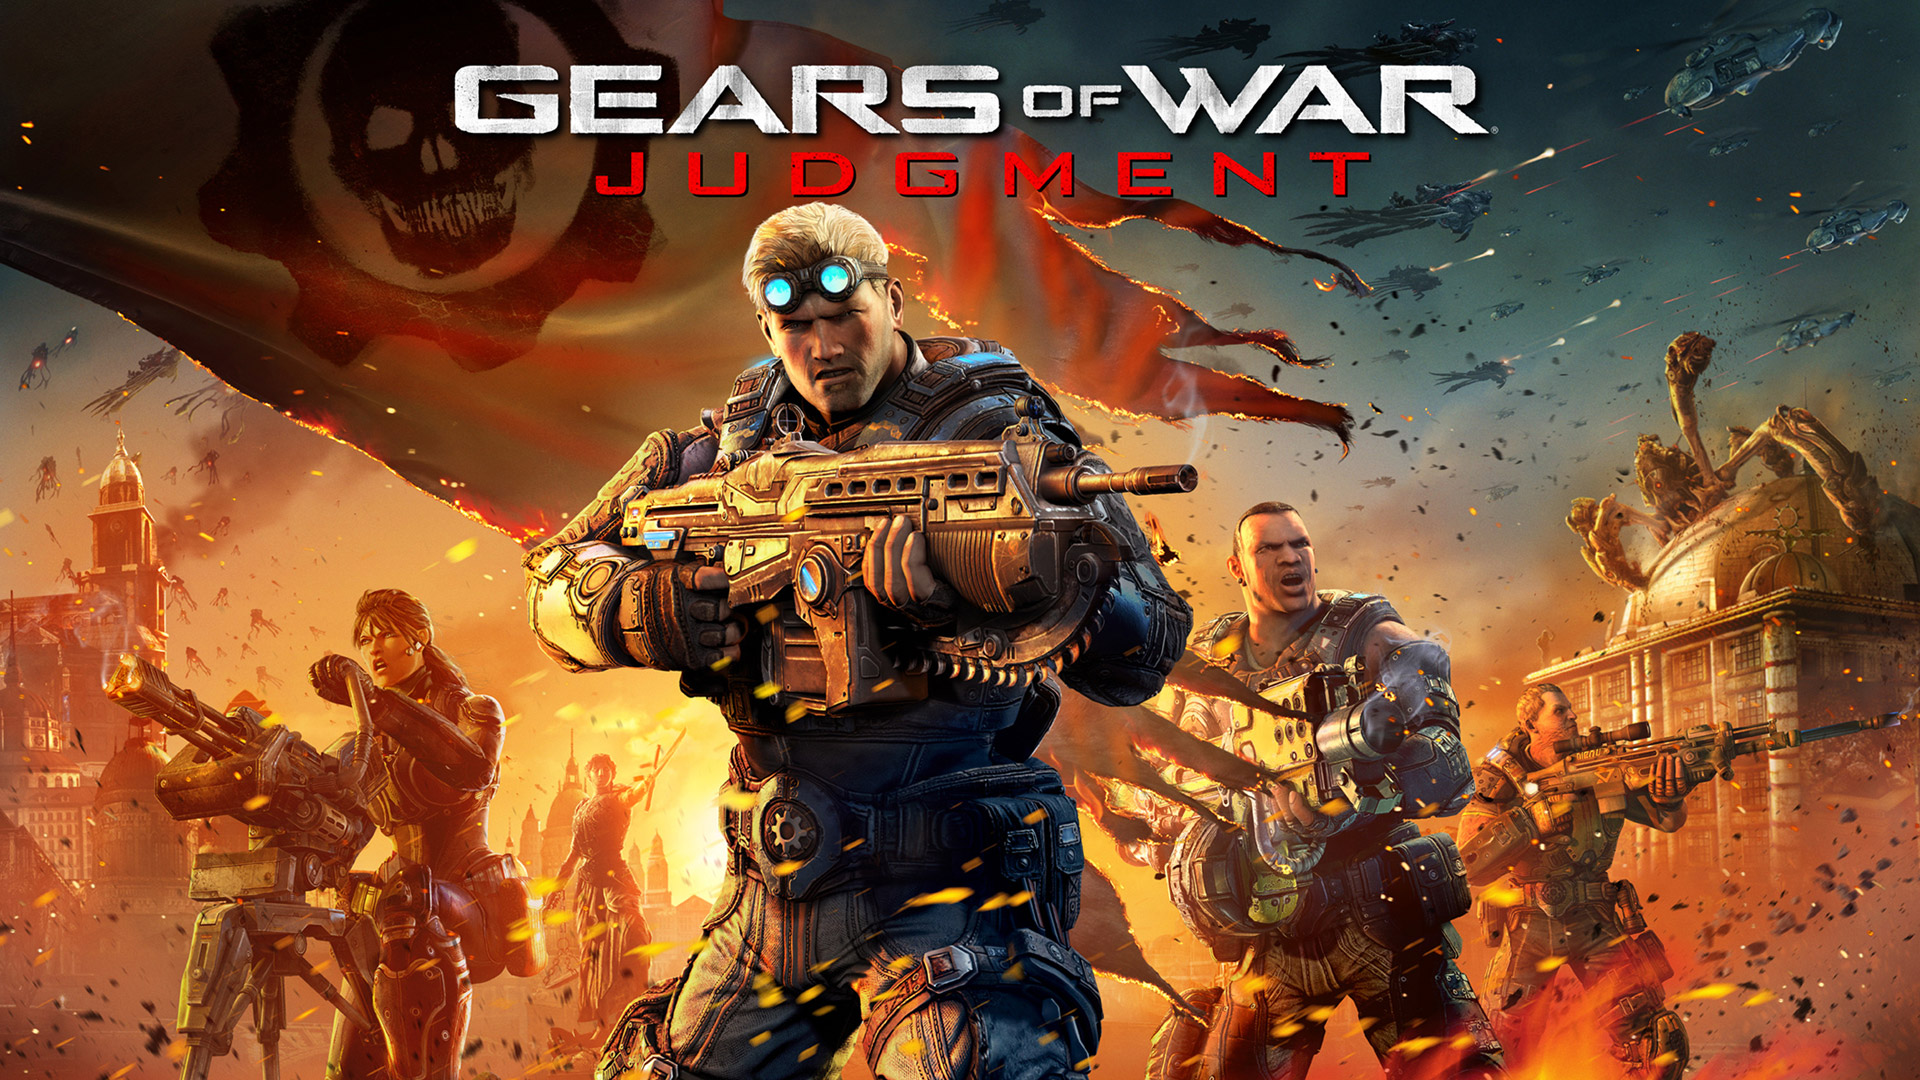 Gears of War: Judgment Wallpaper in 1920x1080